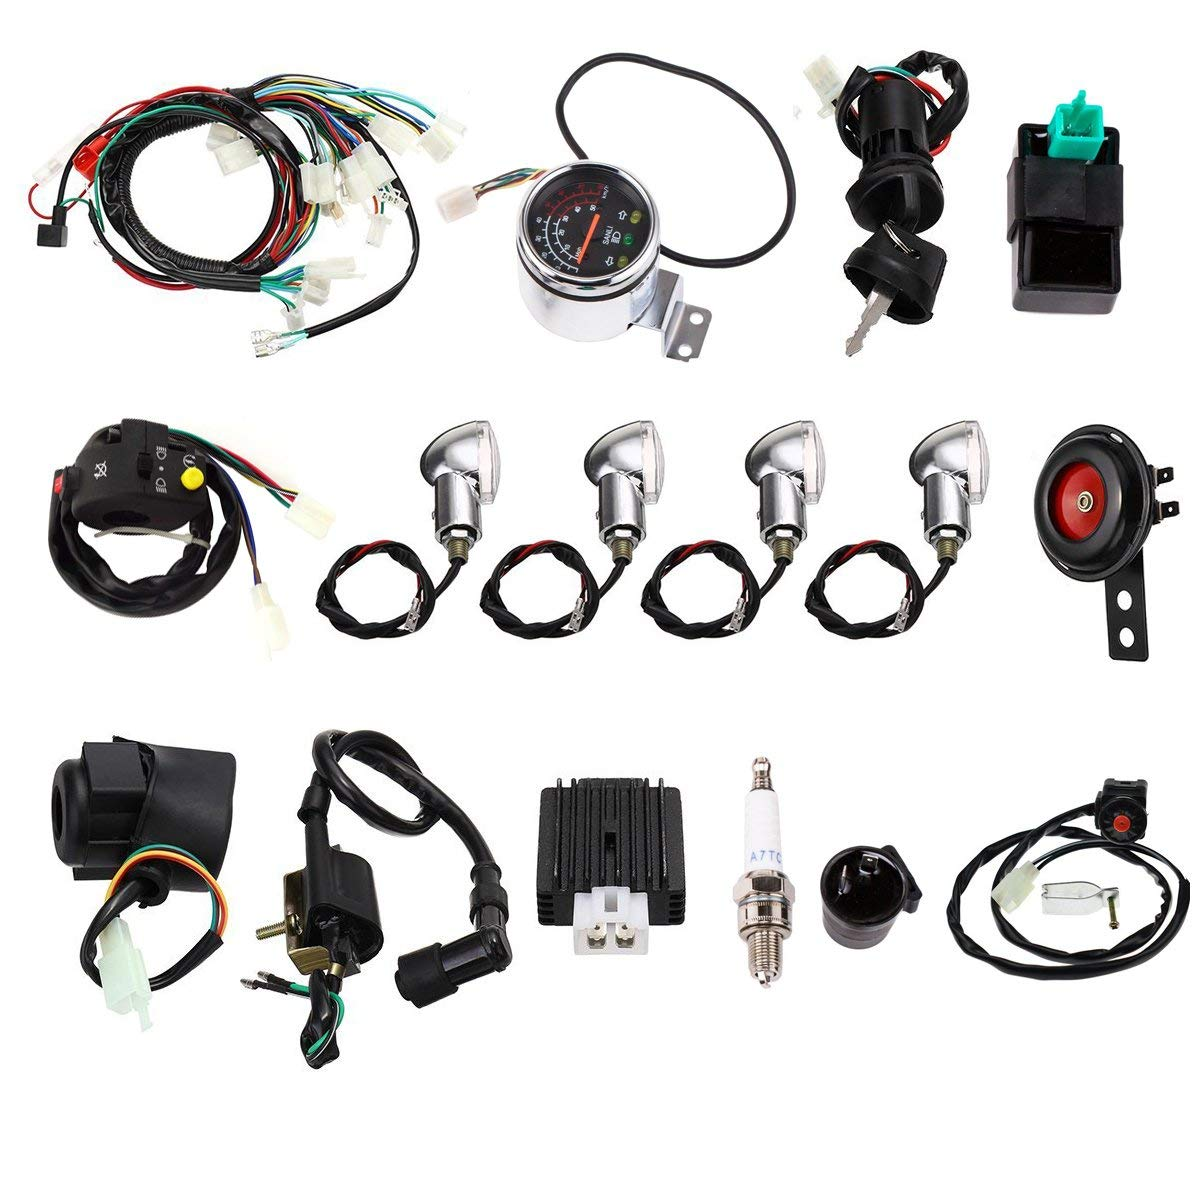 Facaing Full Electric Start Engine Wiring Harness Loom 110cc 125cc Quad Bike ATV Buggy by Facaing